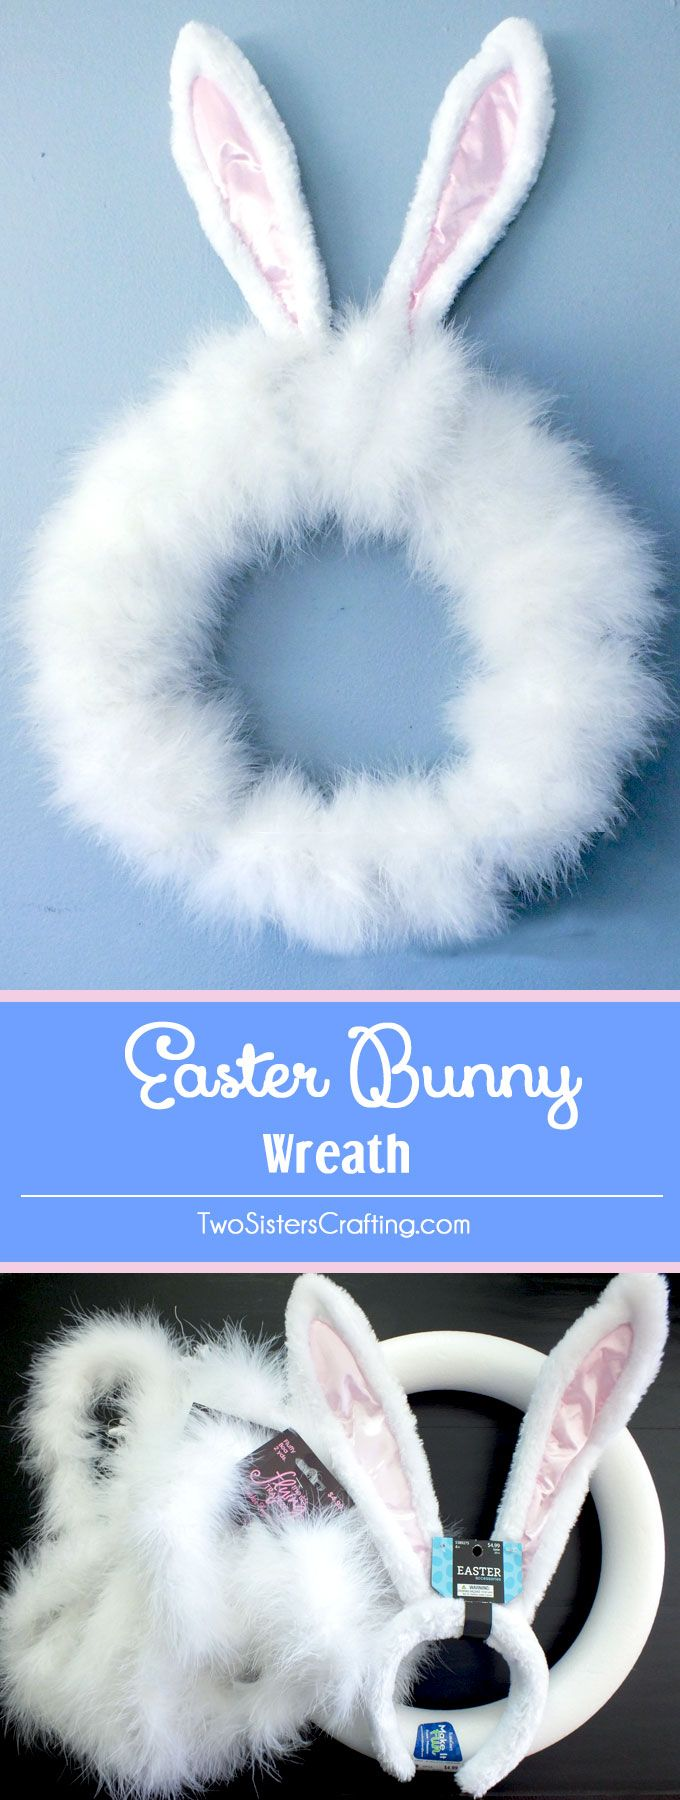 This Easter Bunny Wreath craft project is super easy and makes an adorable Easter wreath that bo ...